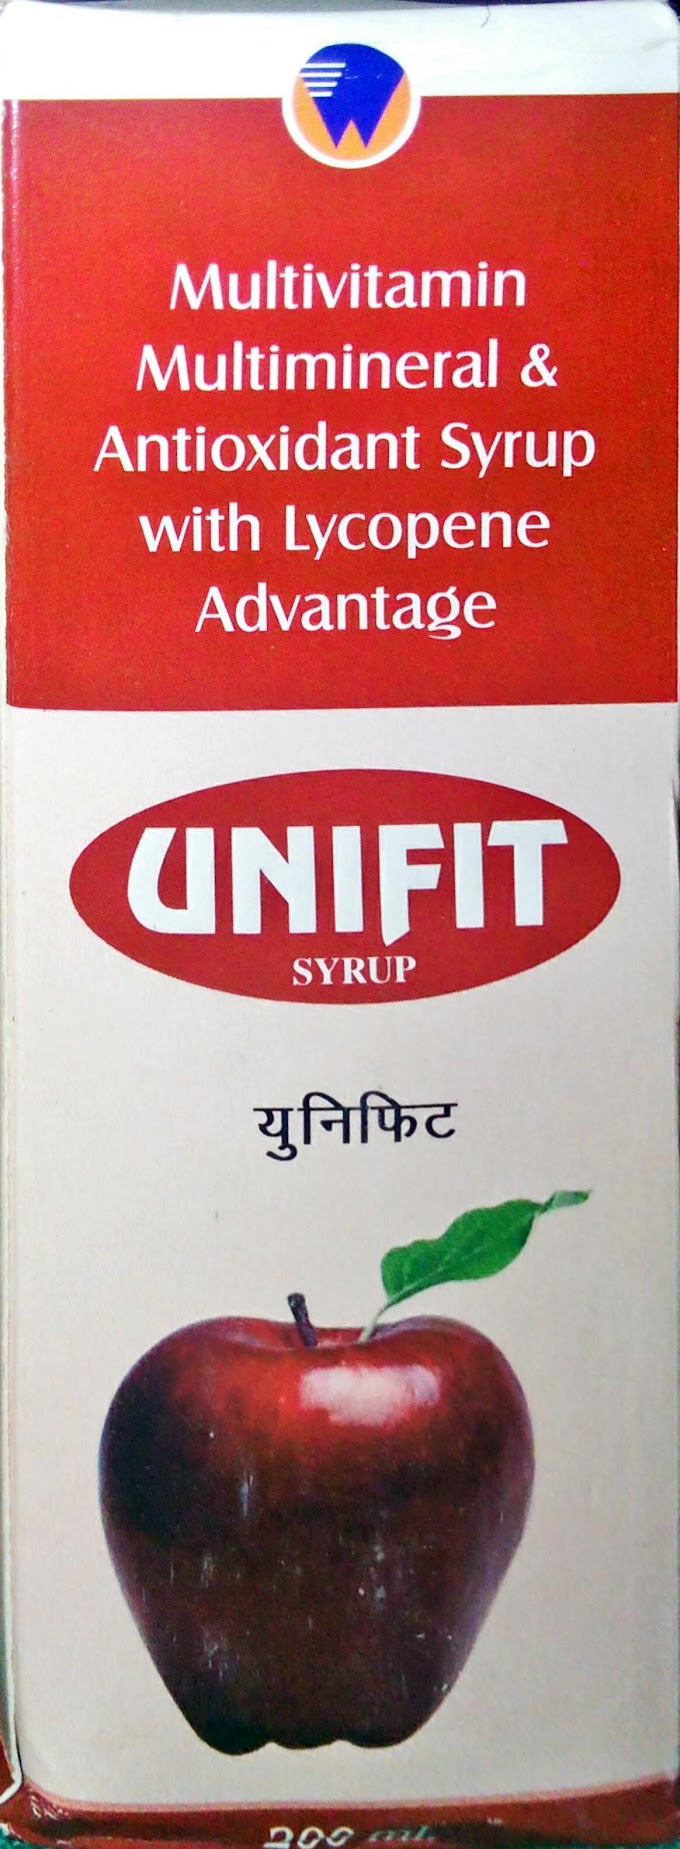 Syrup. Unifit: Ingredients, Indications, Dosages, Side Effects, Contraindications.